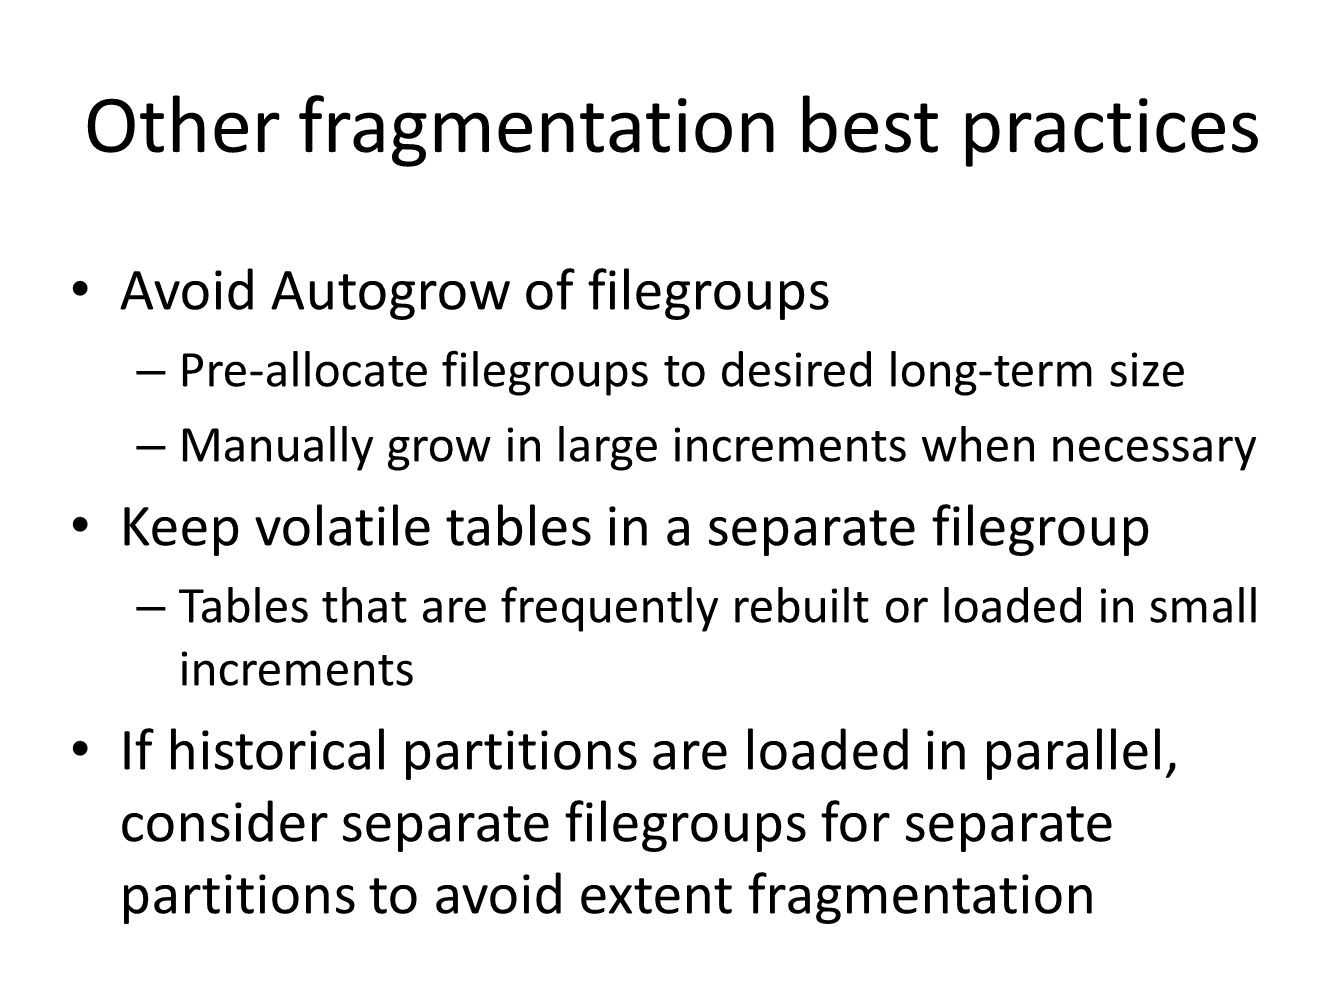 Other fragmentation best practices Avoid Autogrow of filegroups – Pre-allocate filegroups to desired long-term size – Manually grow in large increments when necessary Keep volatile tables in a separate filegroup – Tables that are frequently rebuilt or loaded in small increments If historical partitions are loaded in parallel, consider separate filegroups for separate partitions to avoid extent fragmentation